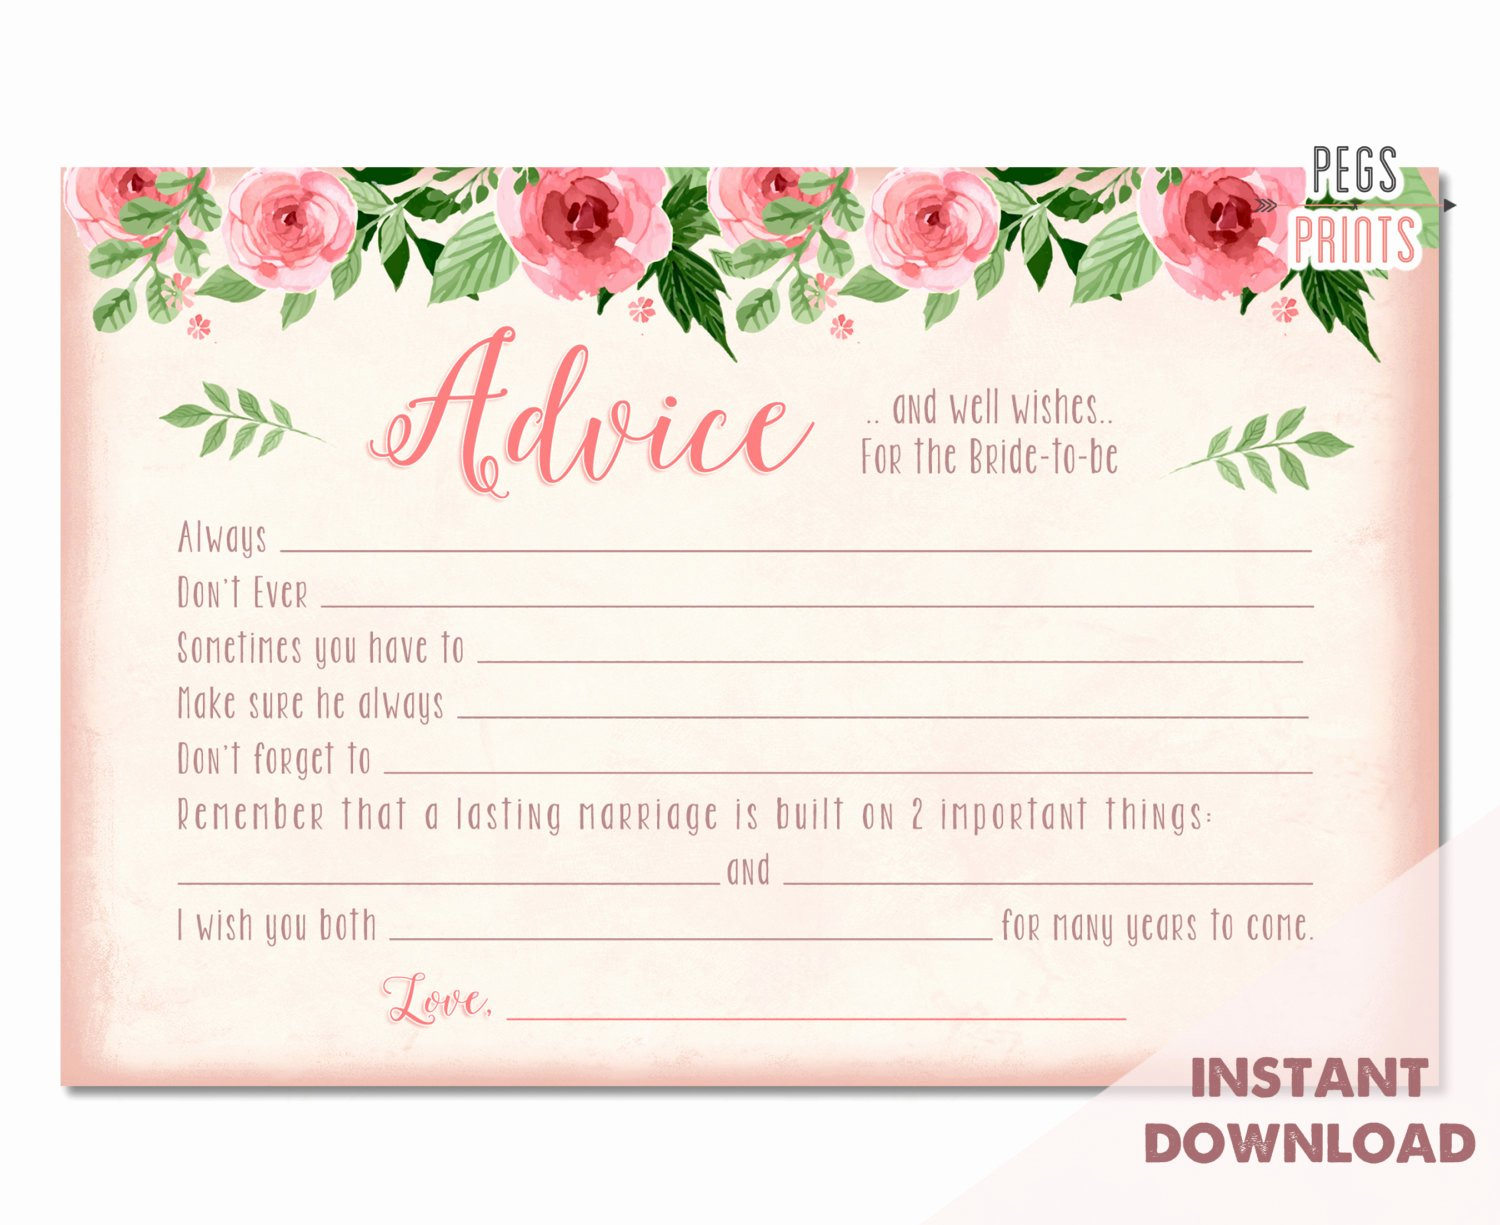 Bridal Shower Advice Cards Elegant Bridal Advice Cards Instant Download Advice for the